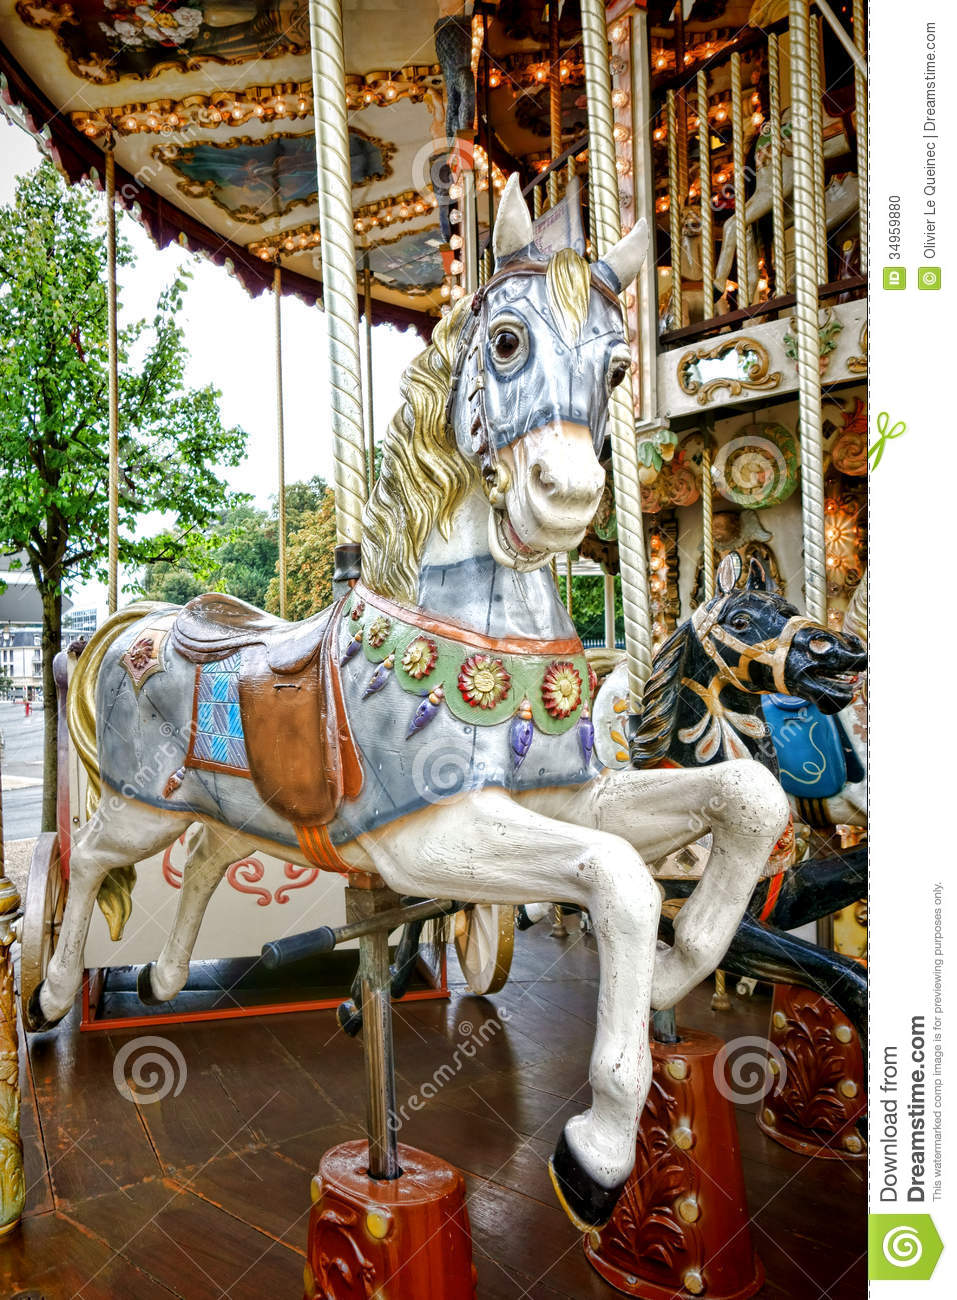 Merry Go Round Amusement Ride Old Carousel Horse Stock Photo - Image ...